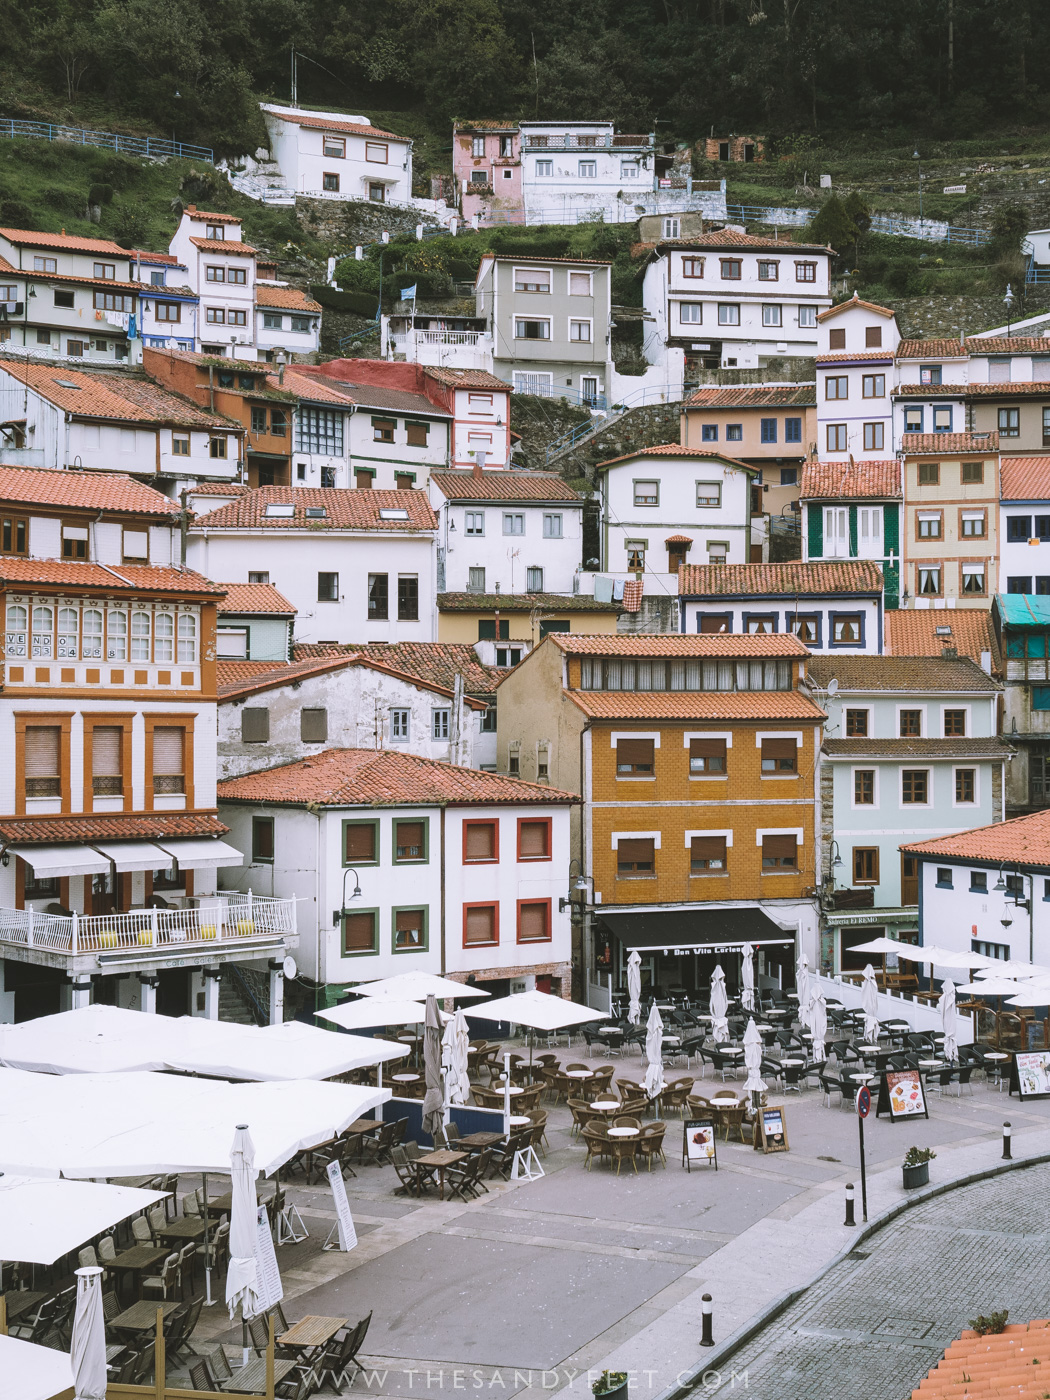 Cudillero | A Taste Of Northern Spain: 11 Incredible Places To Visit In Asturias | The Best Things To Do In Asturias, Spain